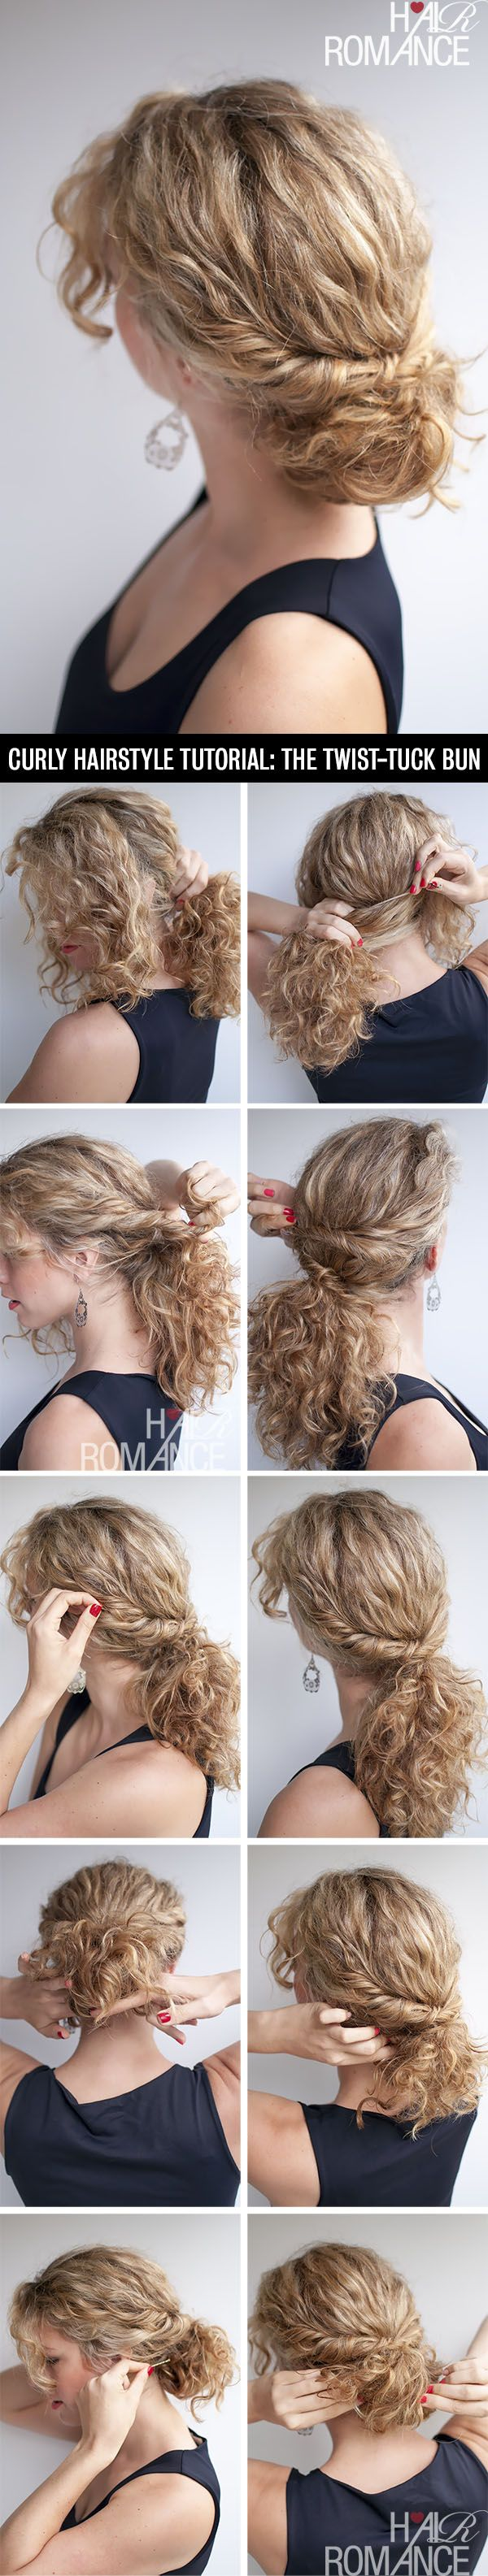 Love this! Can't wait until my hair is long enough to do a fuller bun